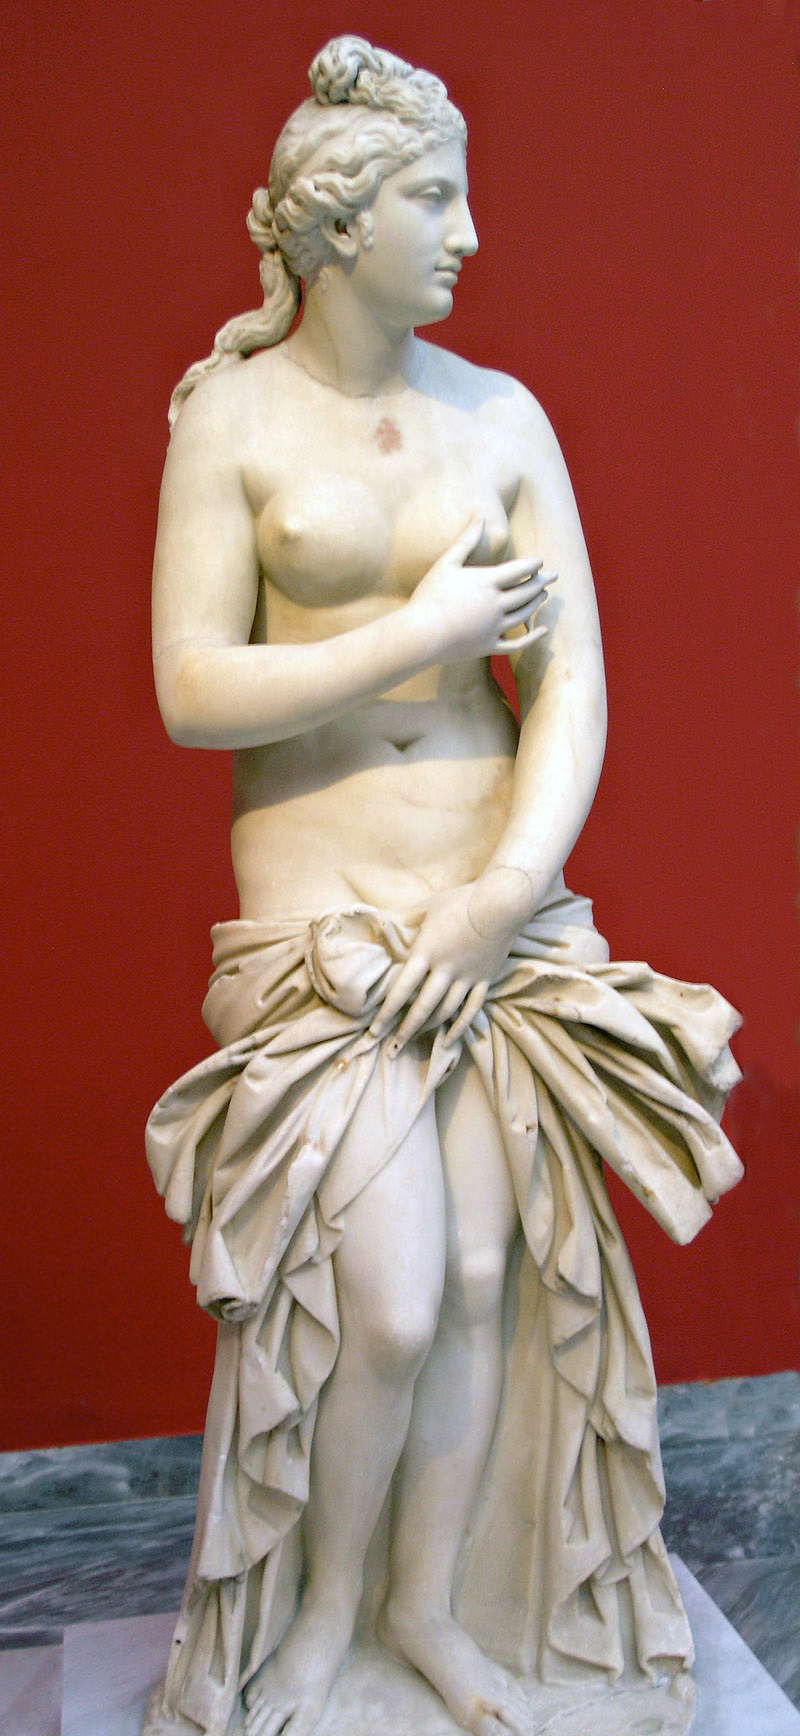 Aphrodite - Greek goddess of love, sex, fertility and wealth.